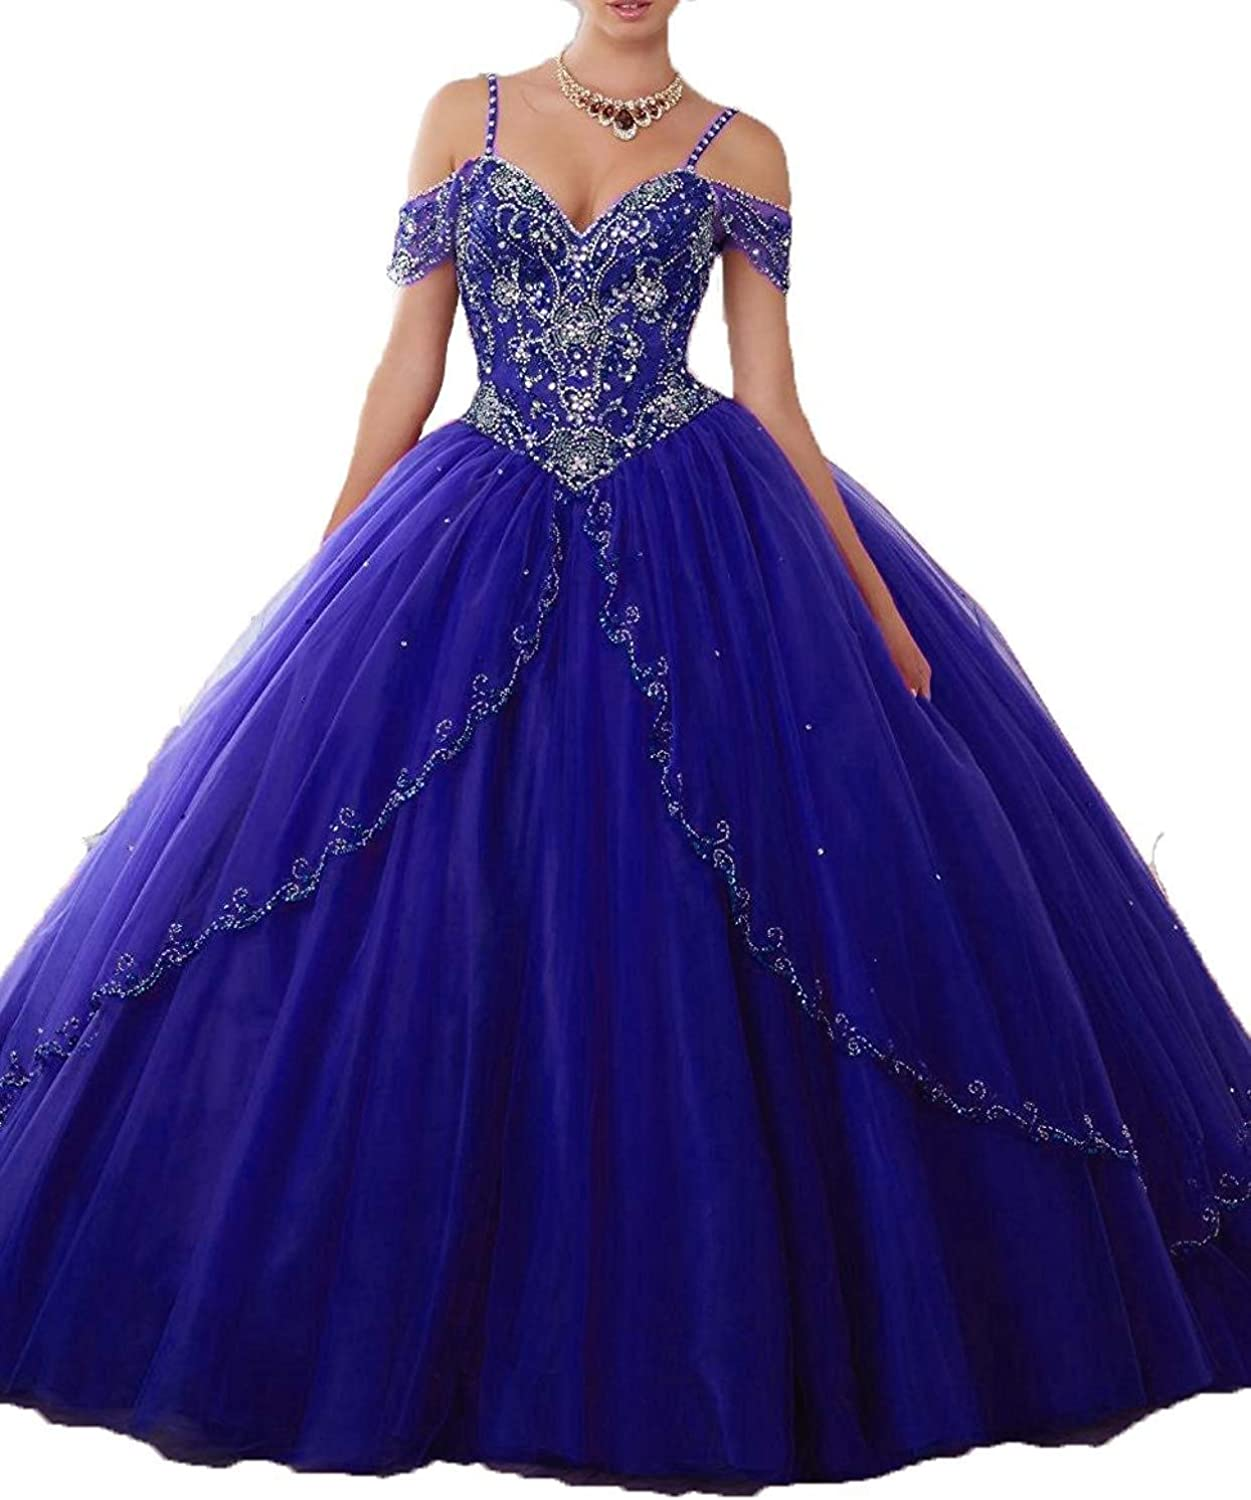 EverBeauty Beaded Off Shoulder Quinceanera Dress Long Aline Tulle Prom Ball Gown